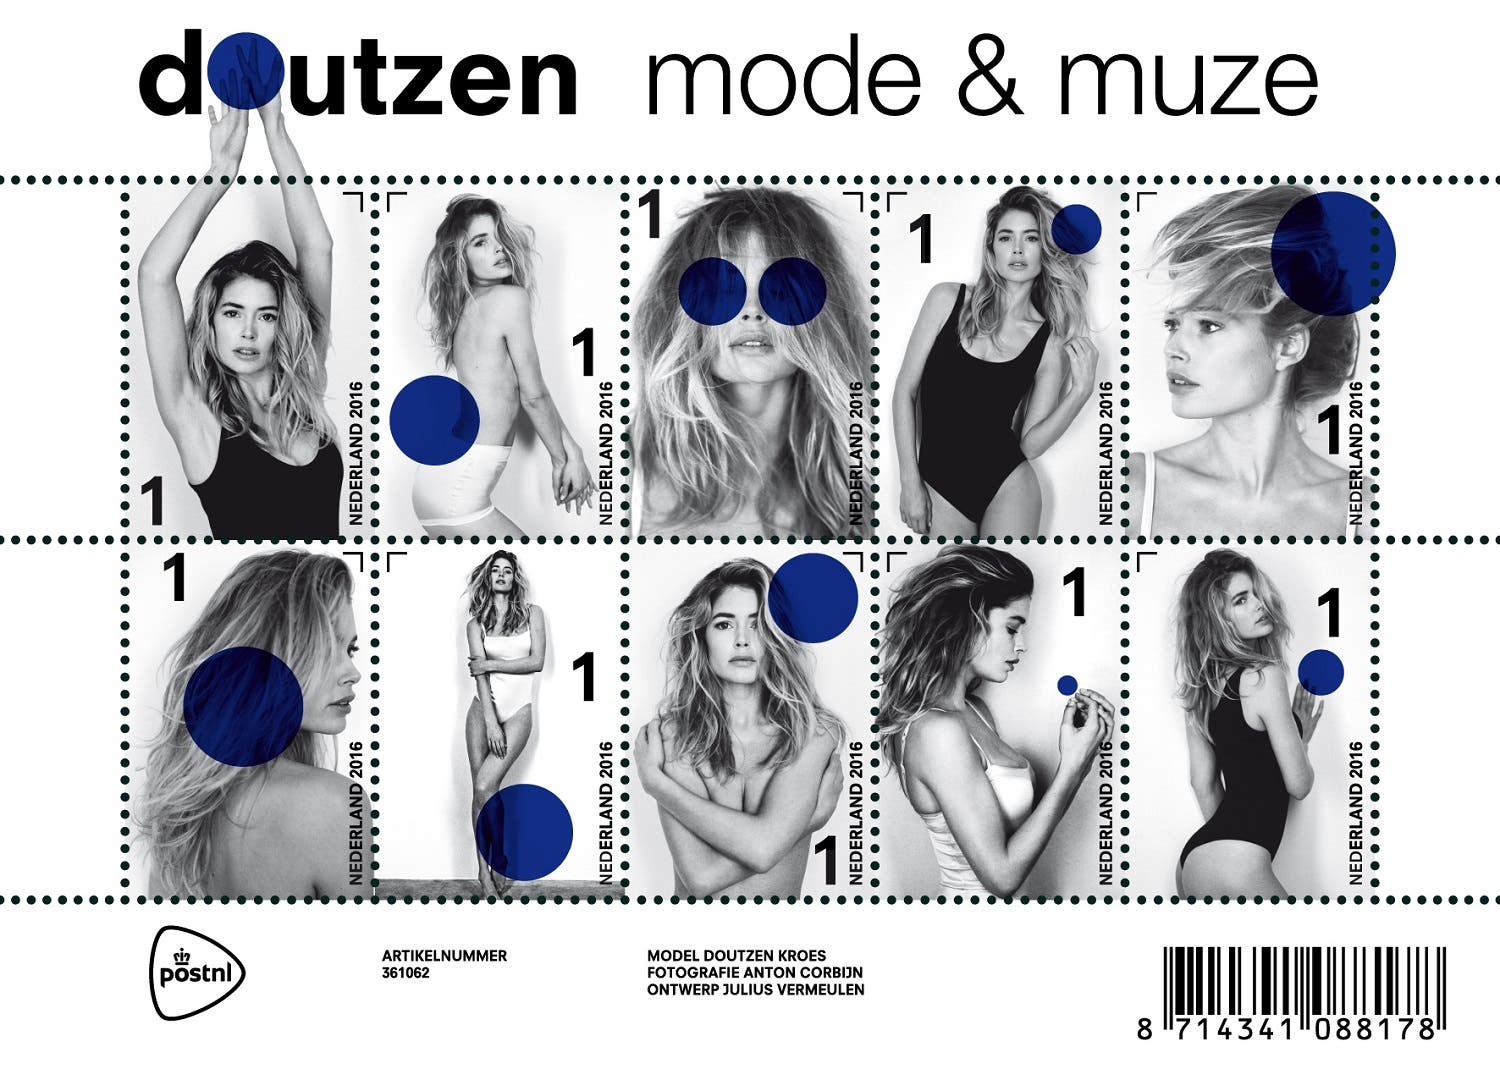 A postal stamp created by Dutch photographer Anton Corbijn, featuring model Doutzen Kroes. (Photo: AFP /POSTNL/ ANTON CORBIJN)